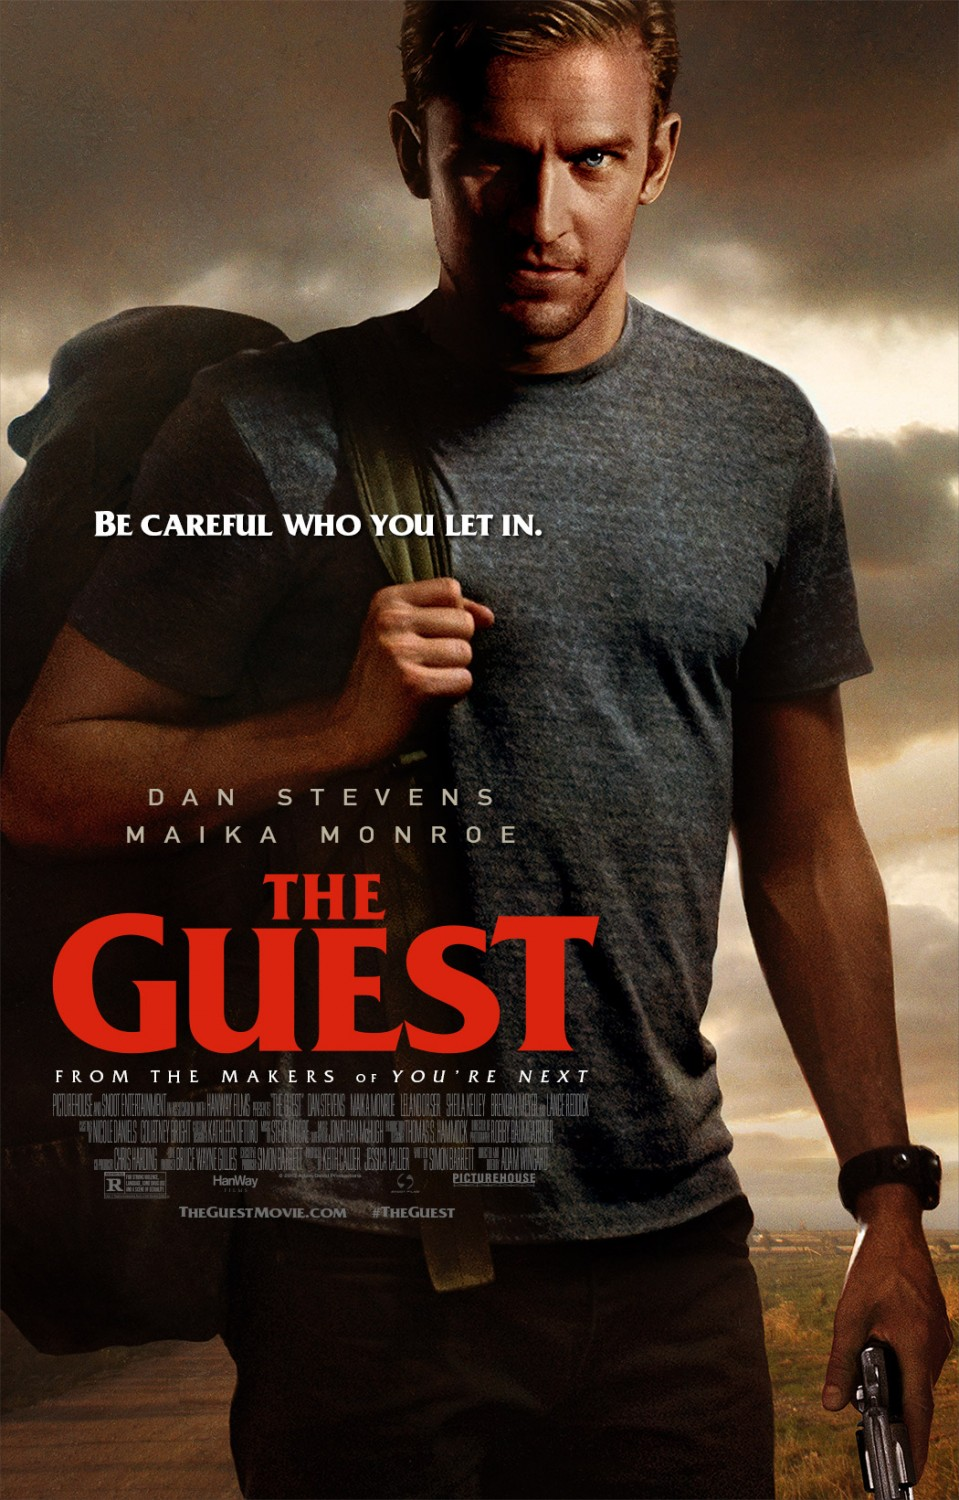 GUEST THE.jpg